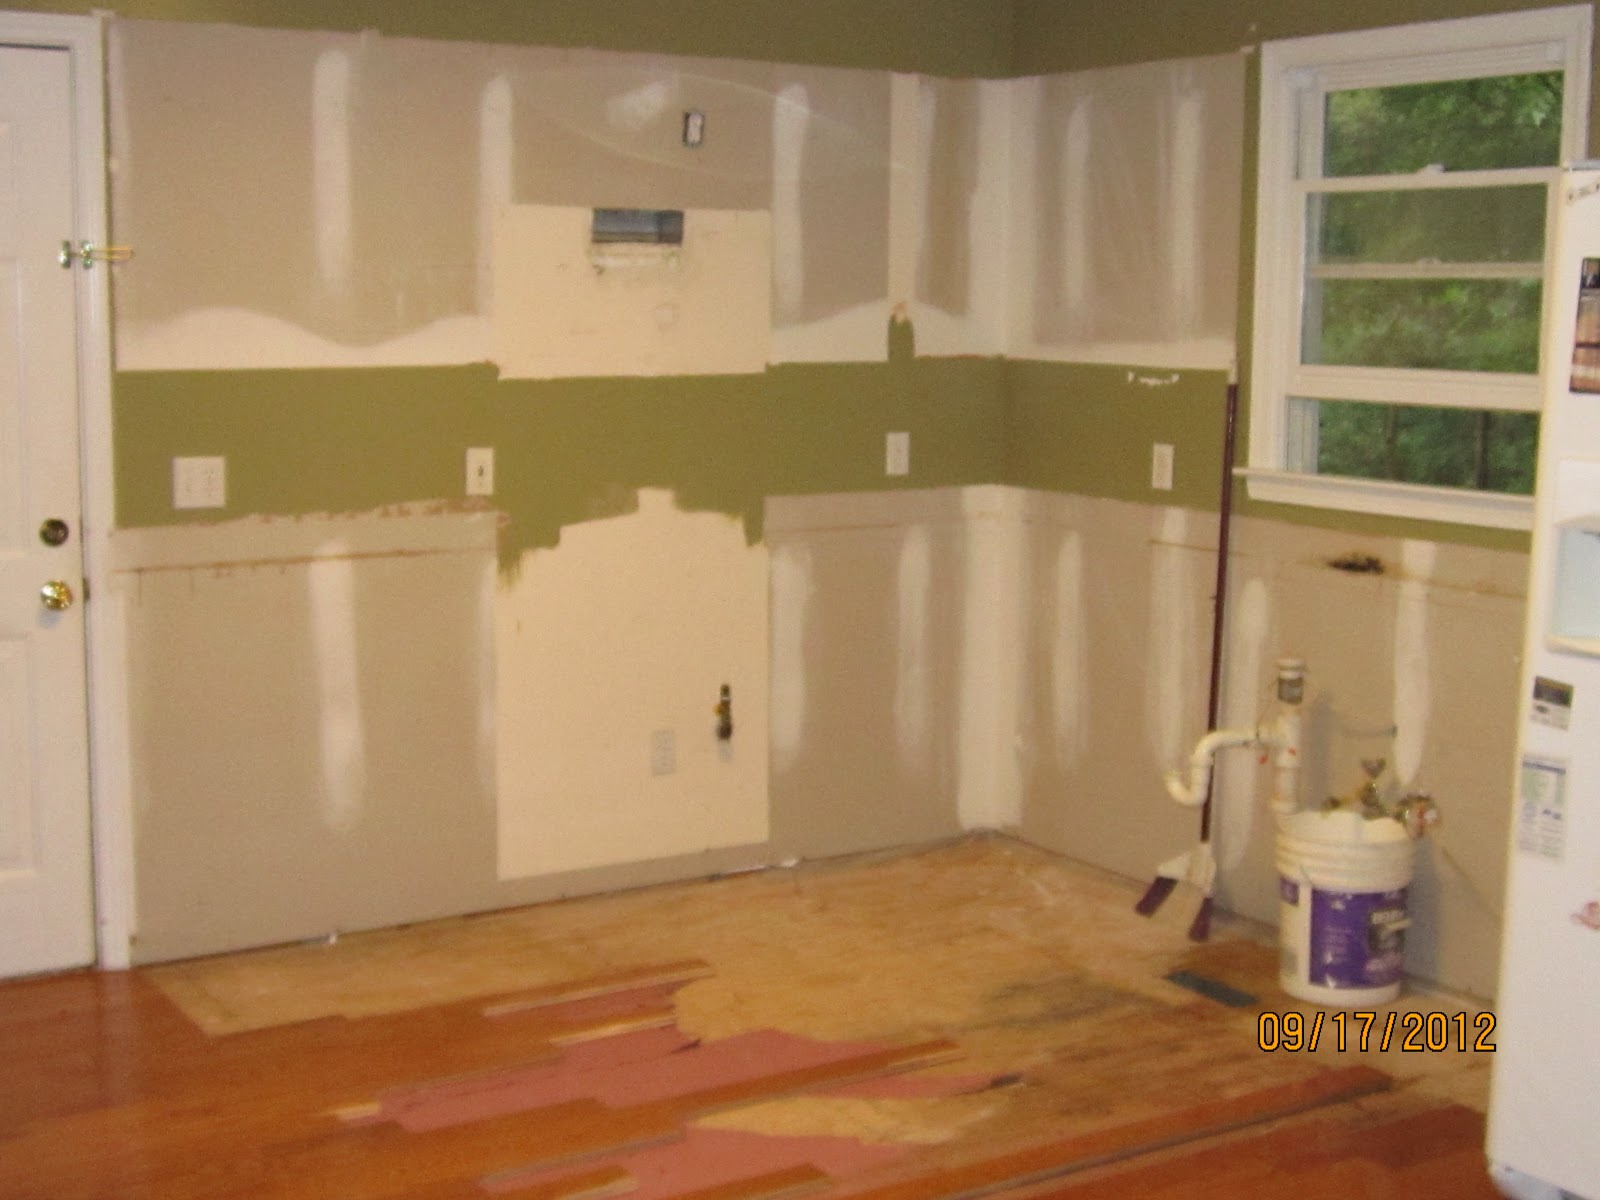 Roy carpentry incorporated photo gallery telephone for When remodeling a kitchen where to start